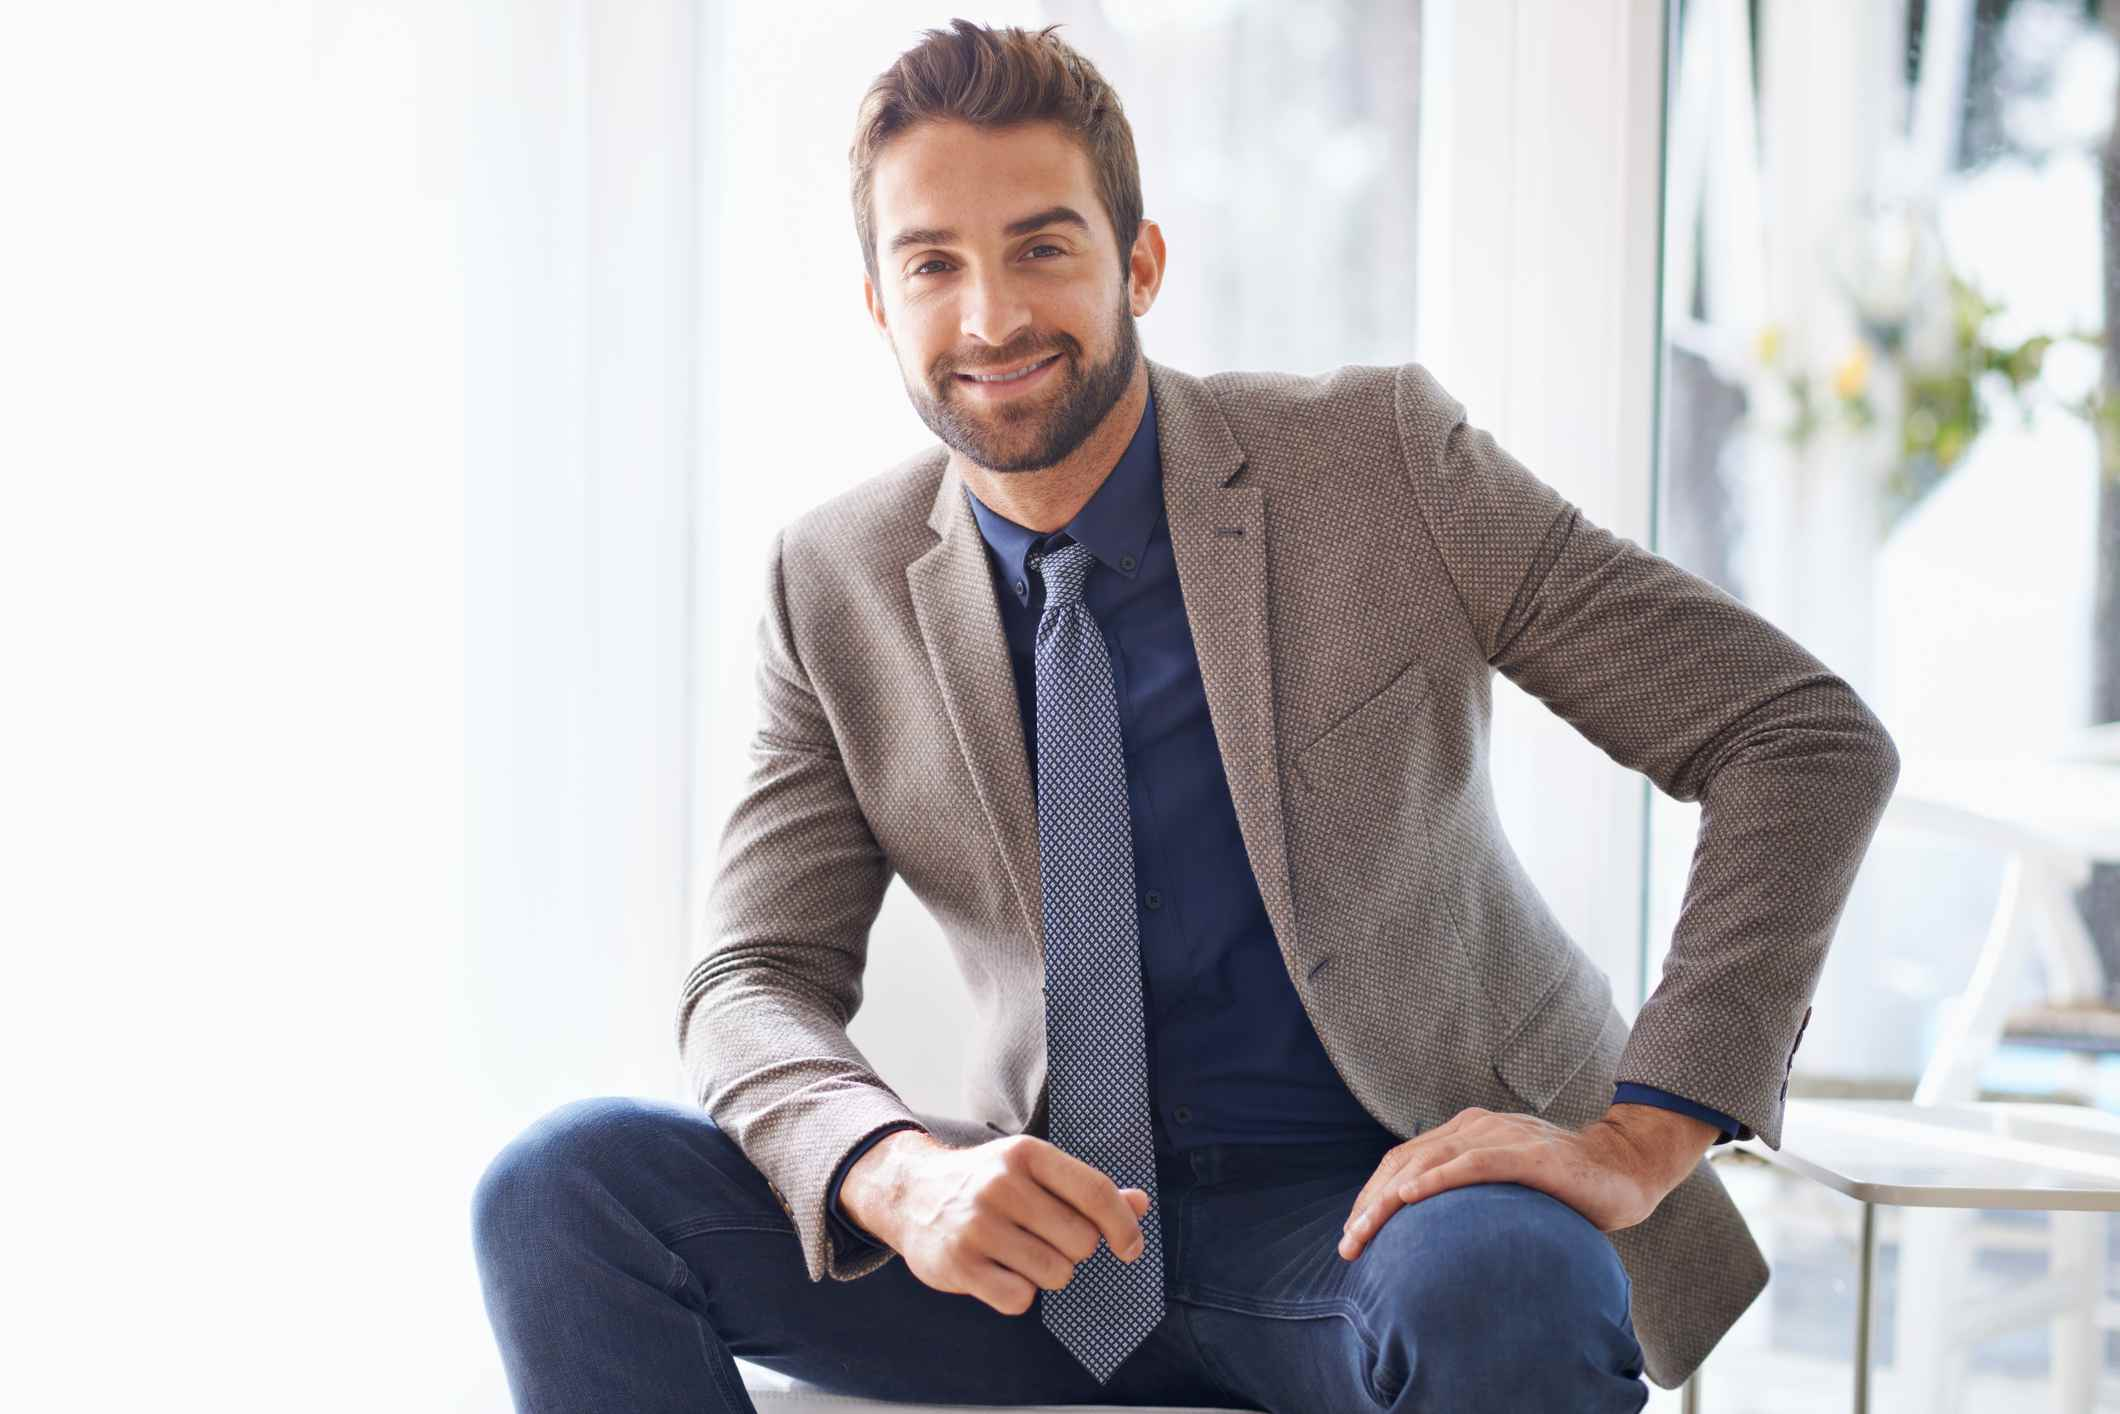 7022f1ce5dc The Best Interview Attire for Men